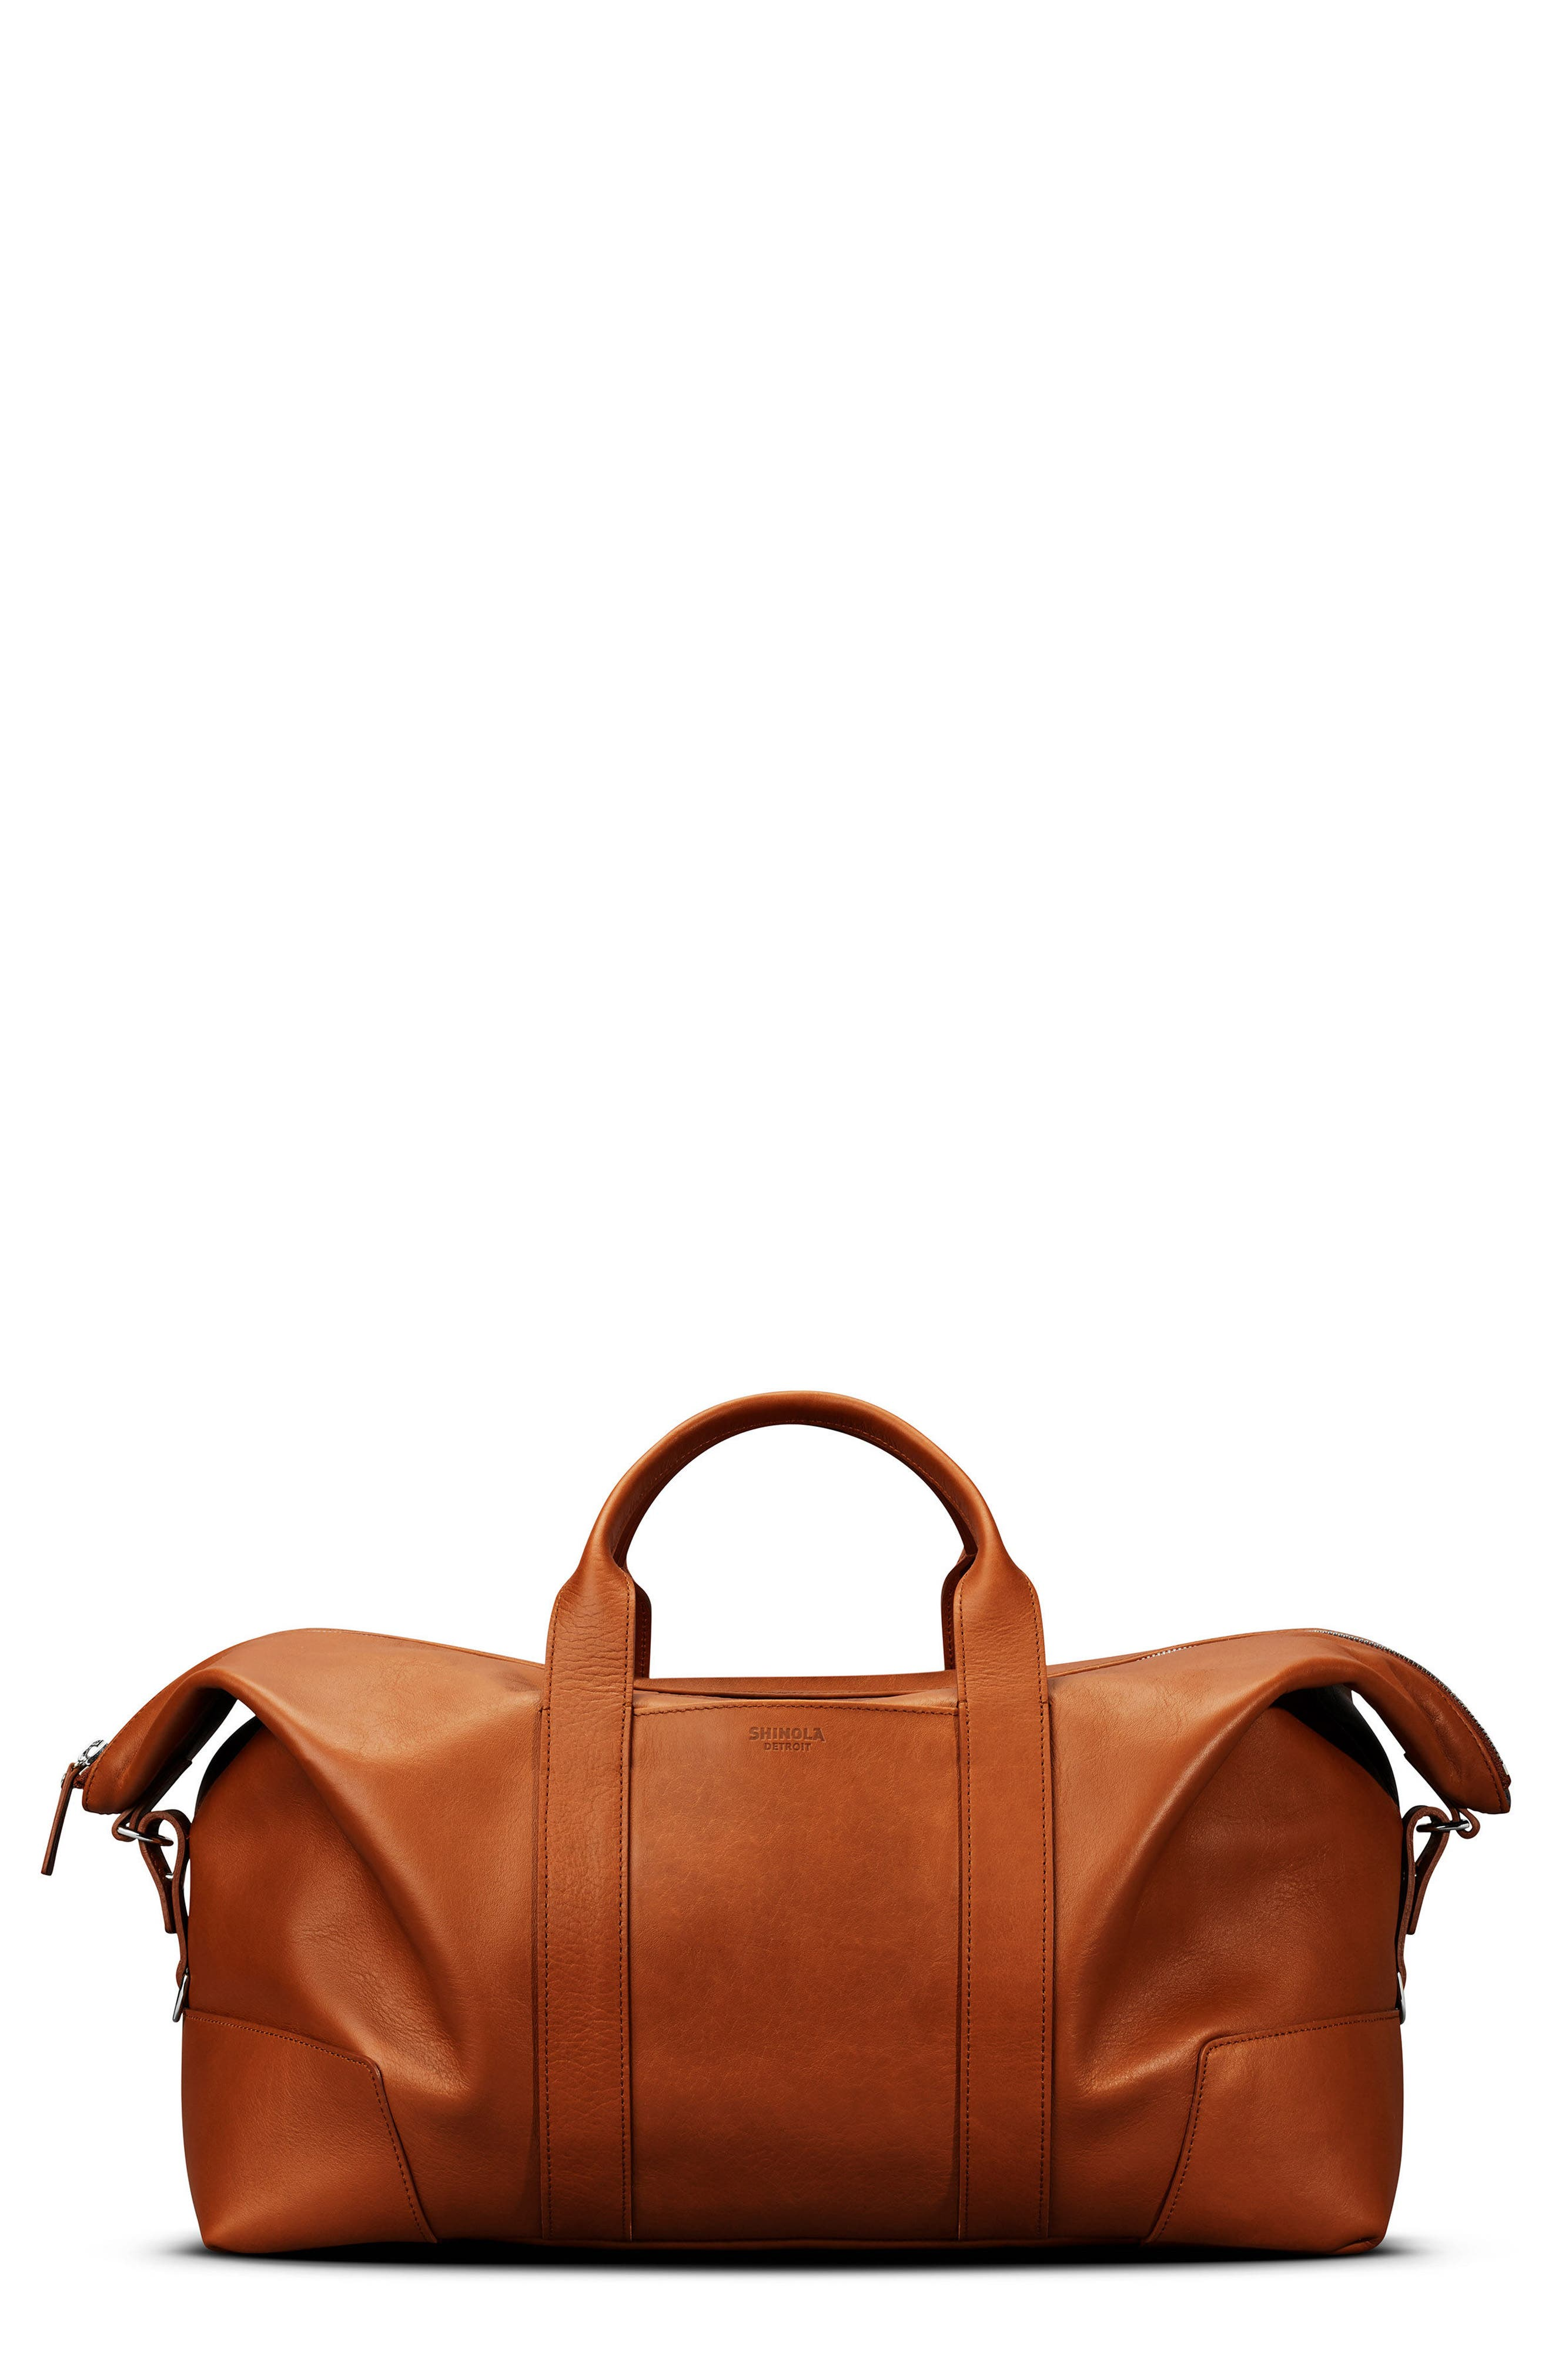 Main Image - Shinola Signature Leather Duffel Bag